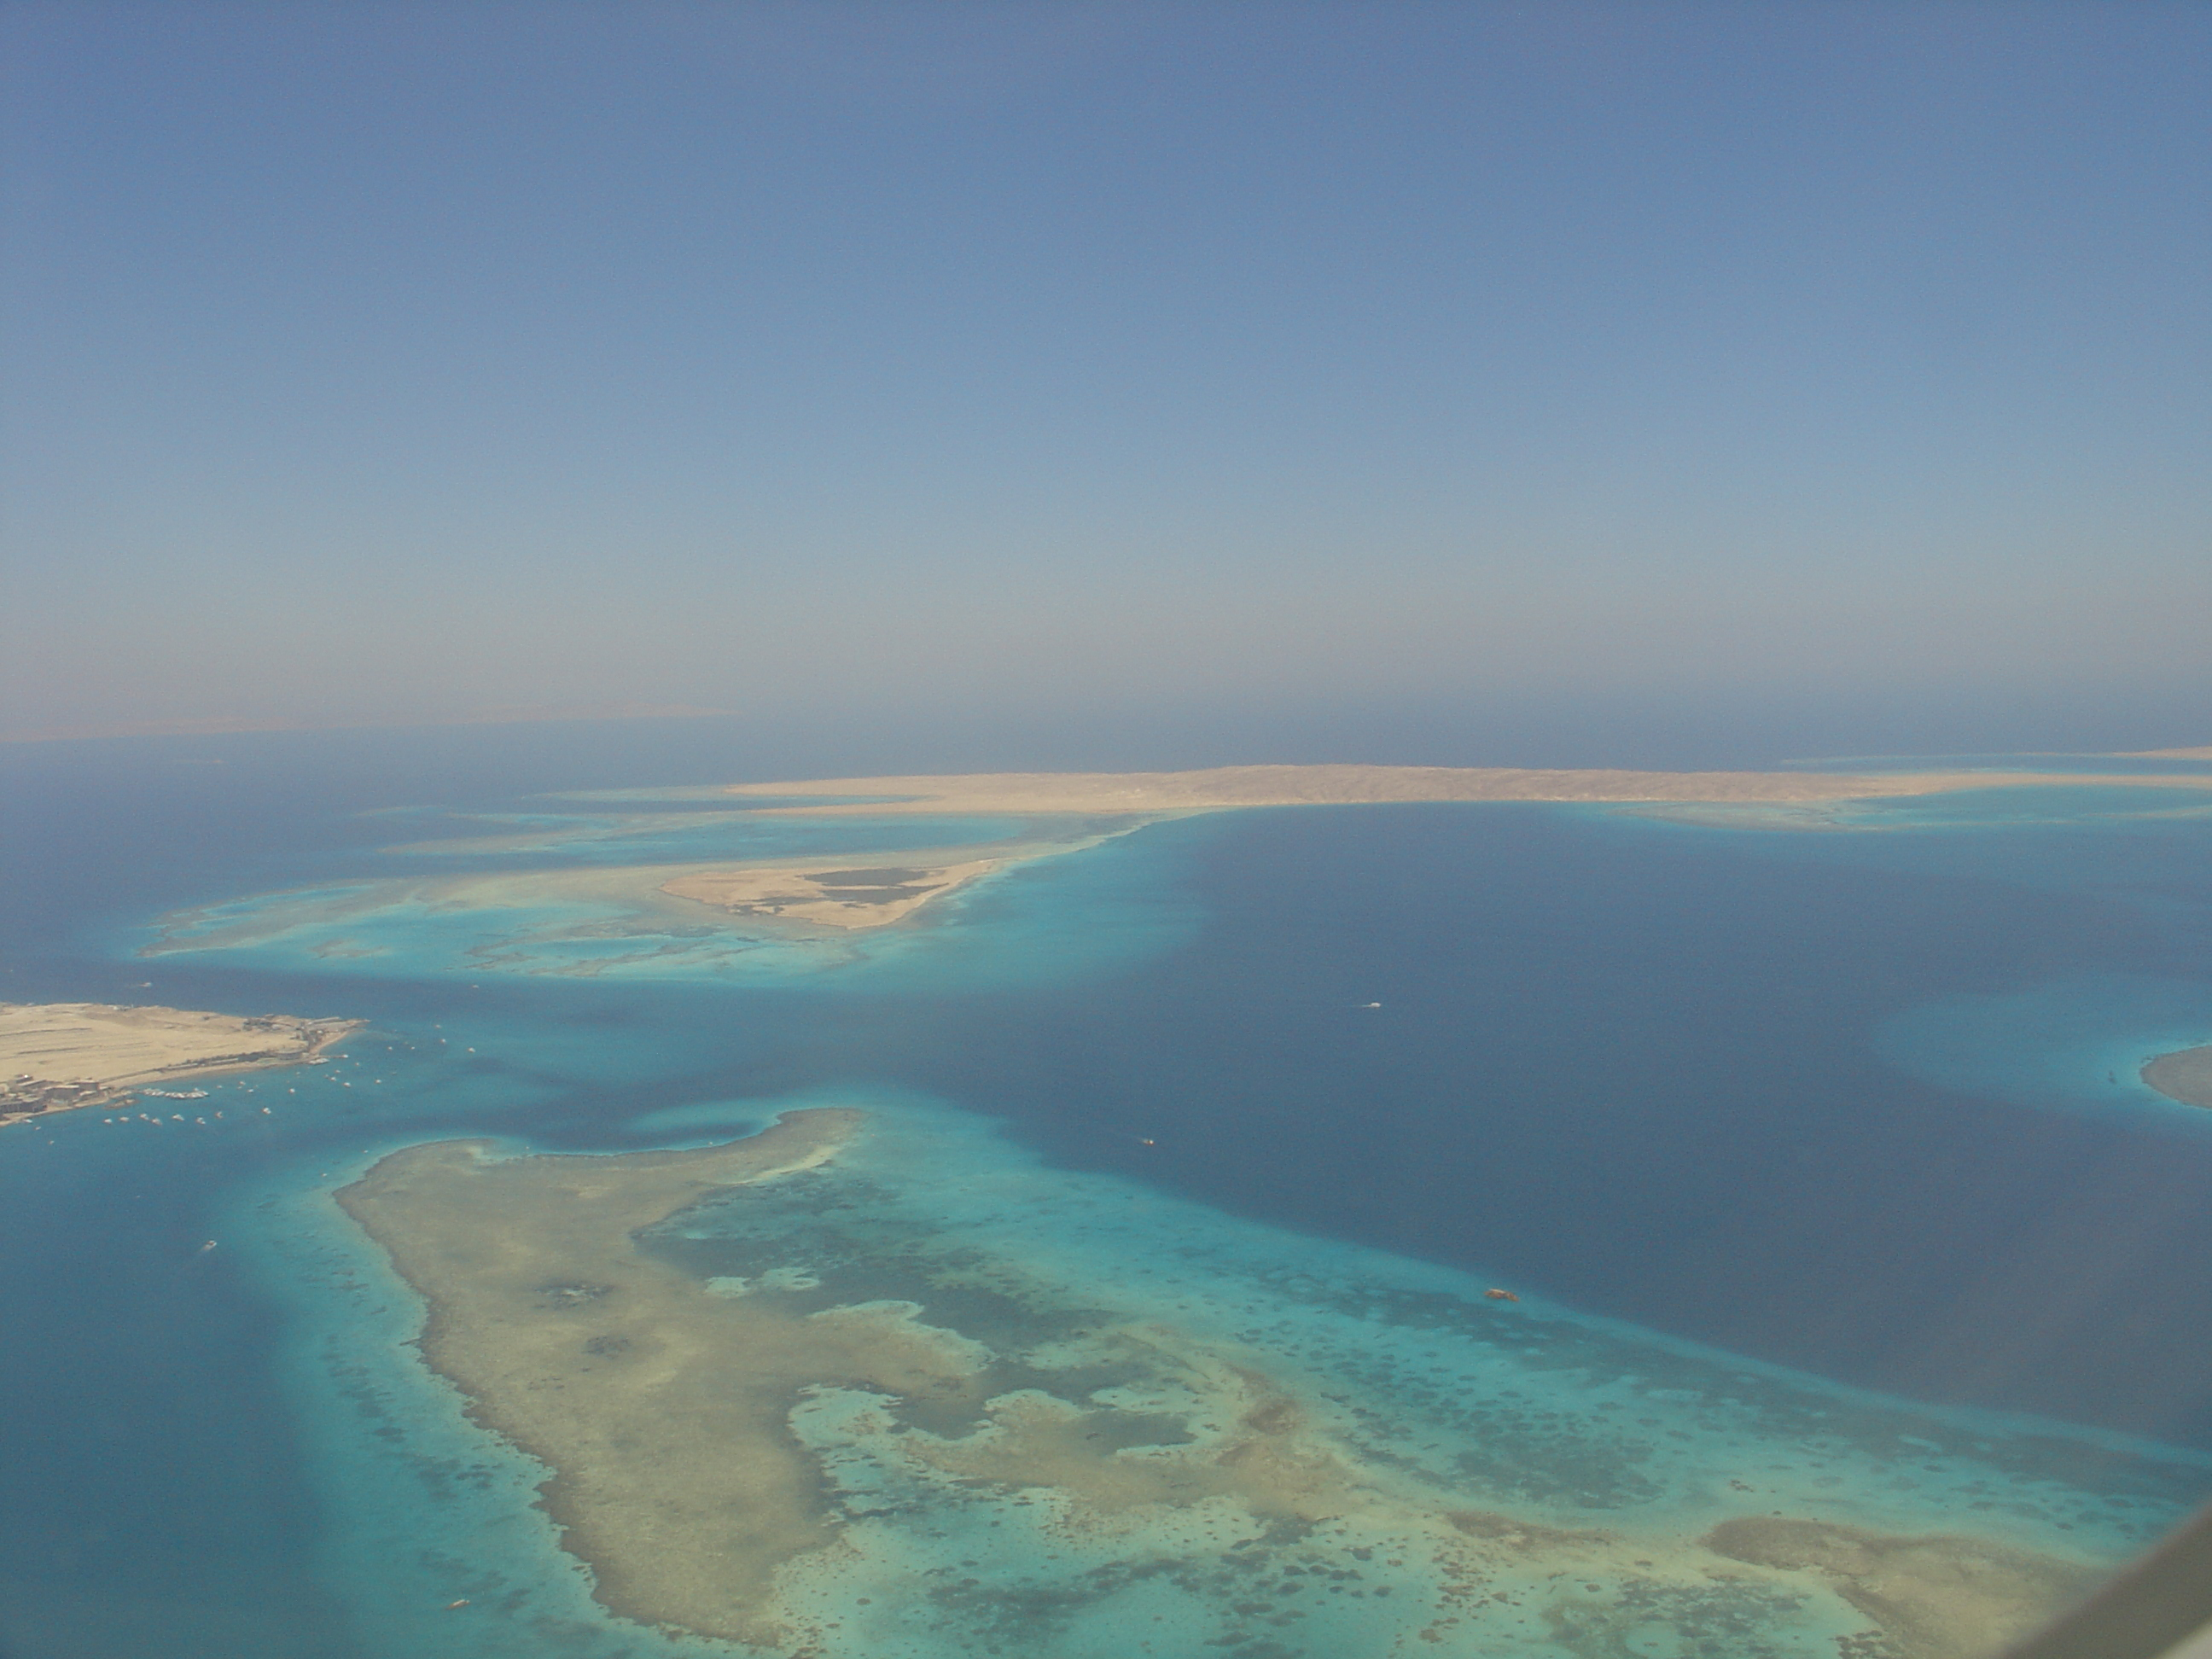 Egypt-Hurghada-from-plane01.jpg